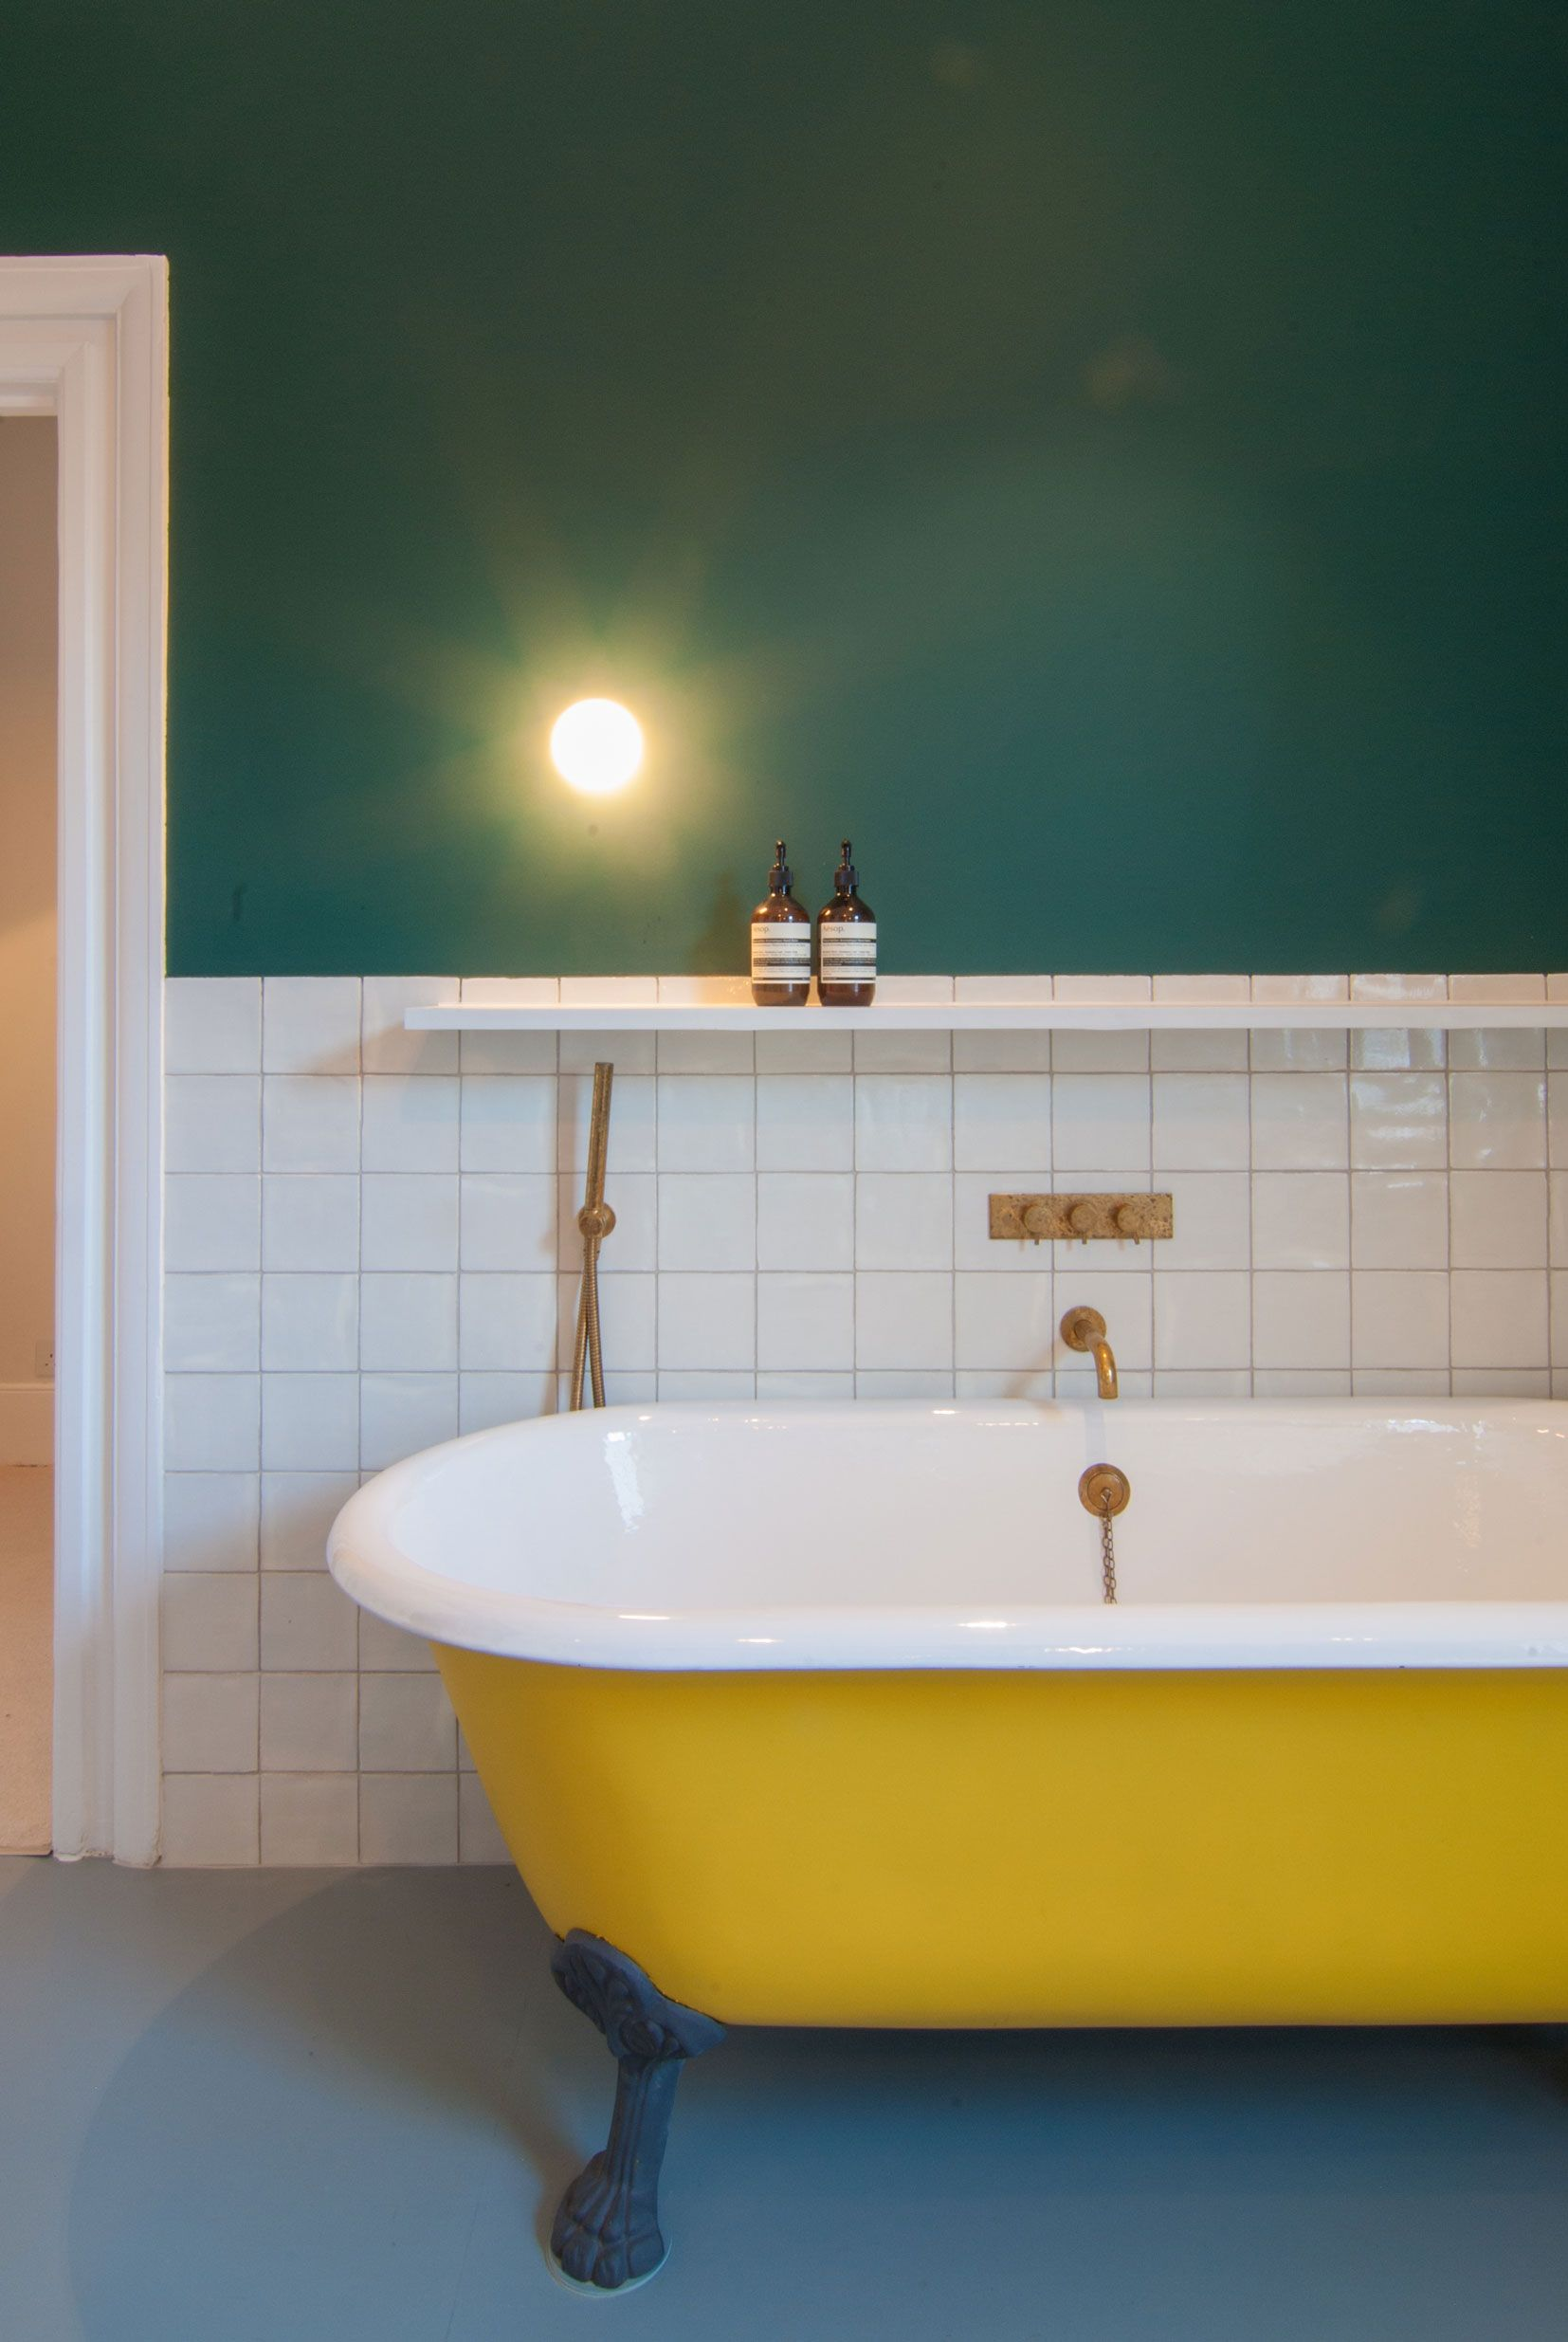 Yellow Bath Dark Green Wall Gold Bath Fittings White Tiles Bathroom Badkamer Geel Groene Badkamer Smalle Badkamer